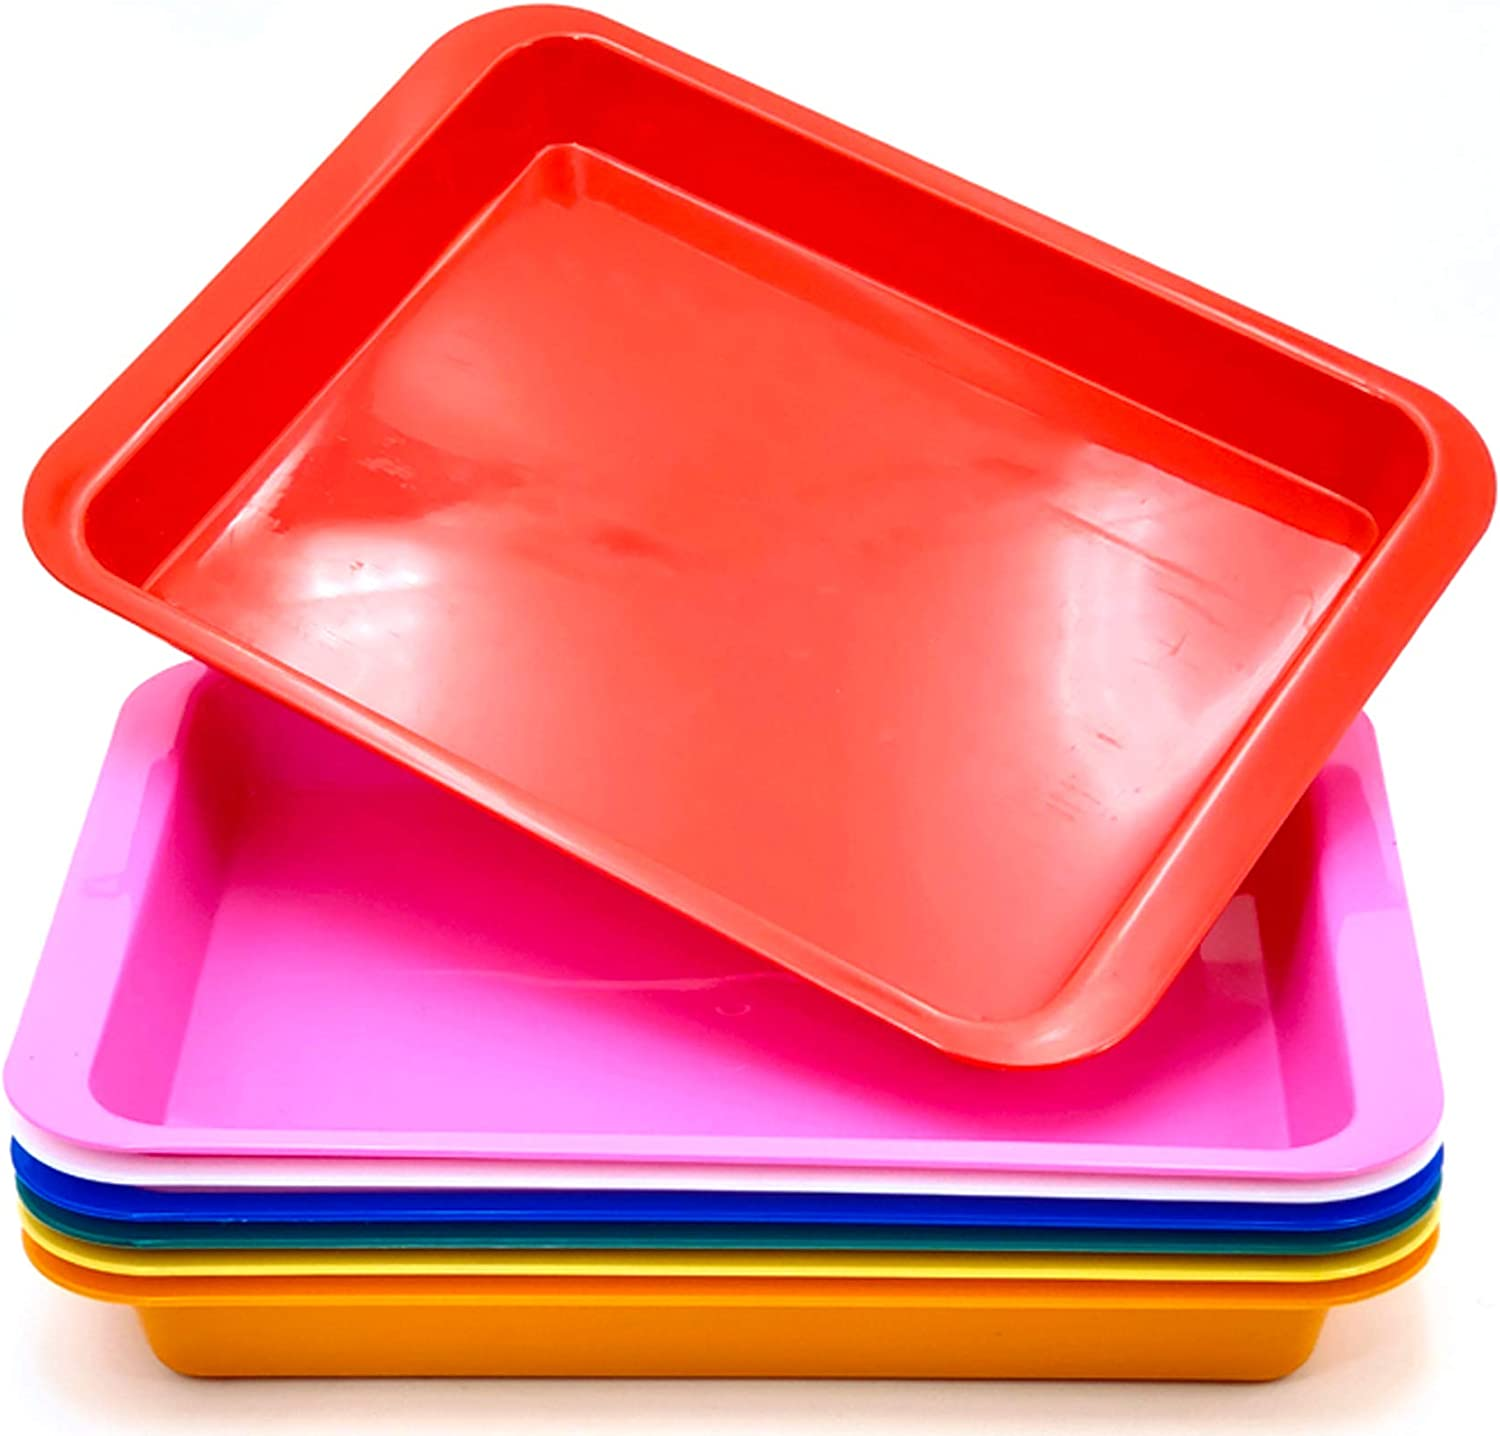 Painting Fun Home Activities Diy Projects Multiuse Art And Crafts Organizer Tray Serving Tray For Slime